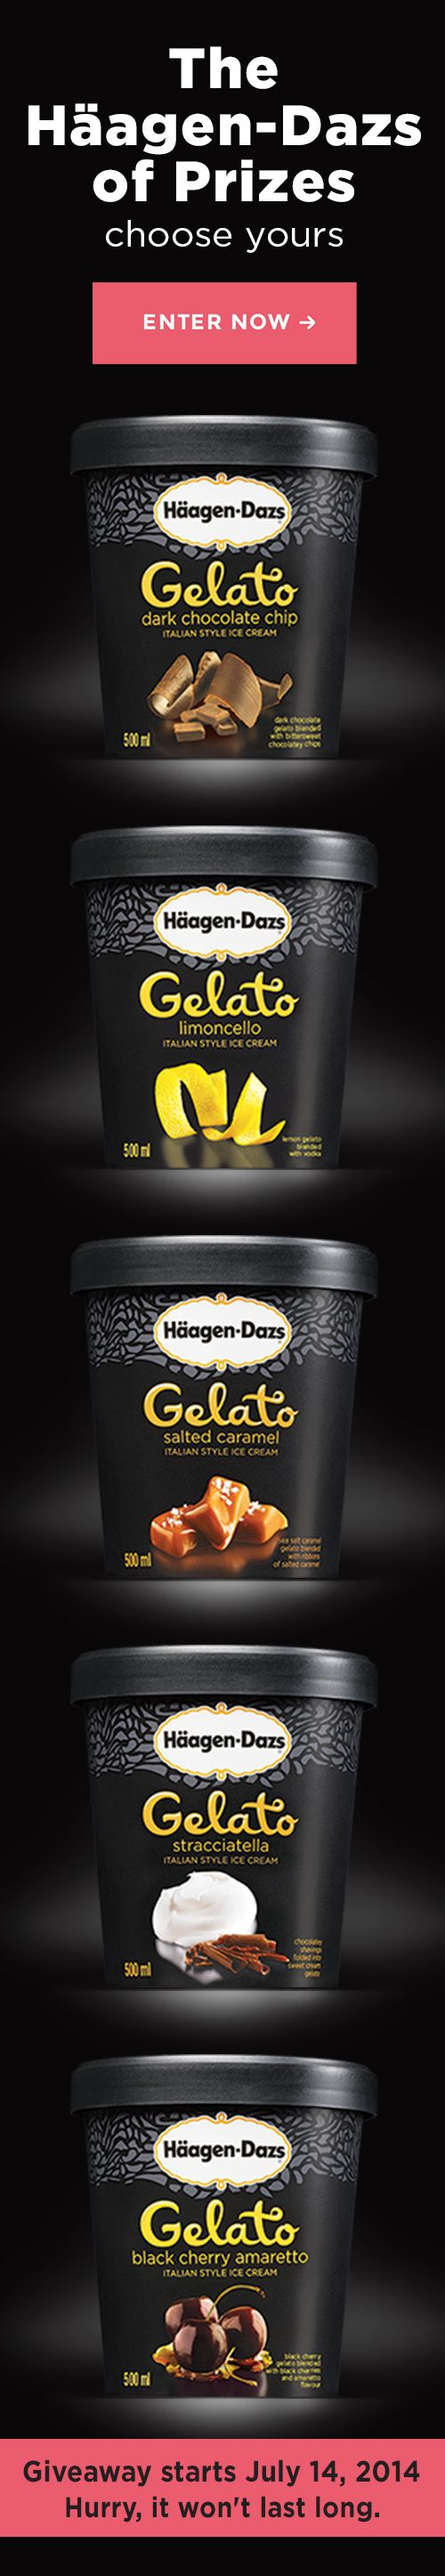 200 Deliciously Decadent Haagen-Dazs Gelato Tubs (500ml) available to be won! #WinHäagenDazs